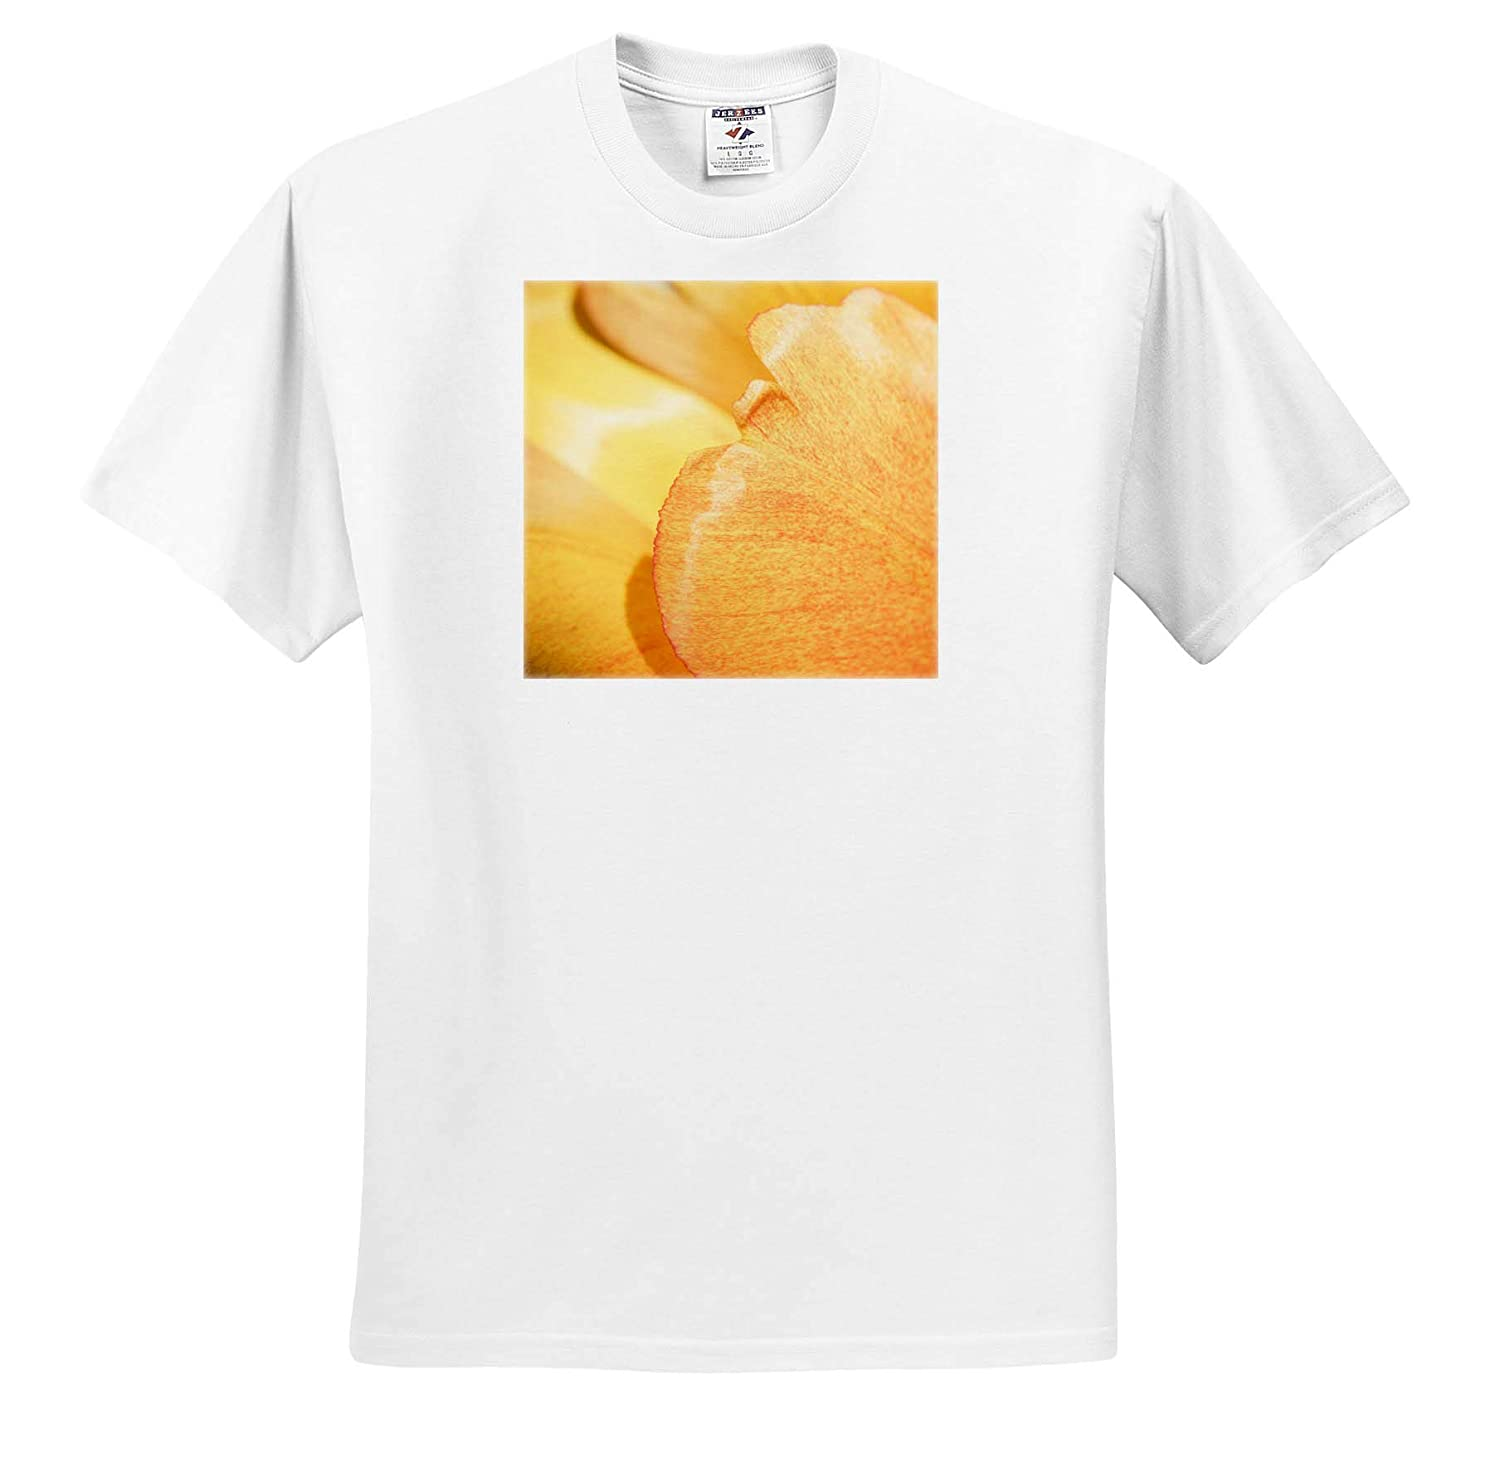 T-Shirts Flowers Tulips Macro View of Tender Yellow and Orange Tulip Flower Petals 3dRose Alexis Photography